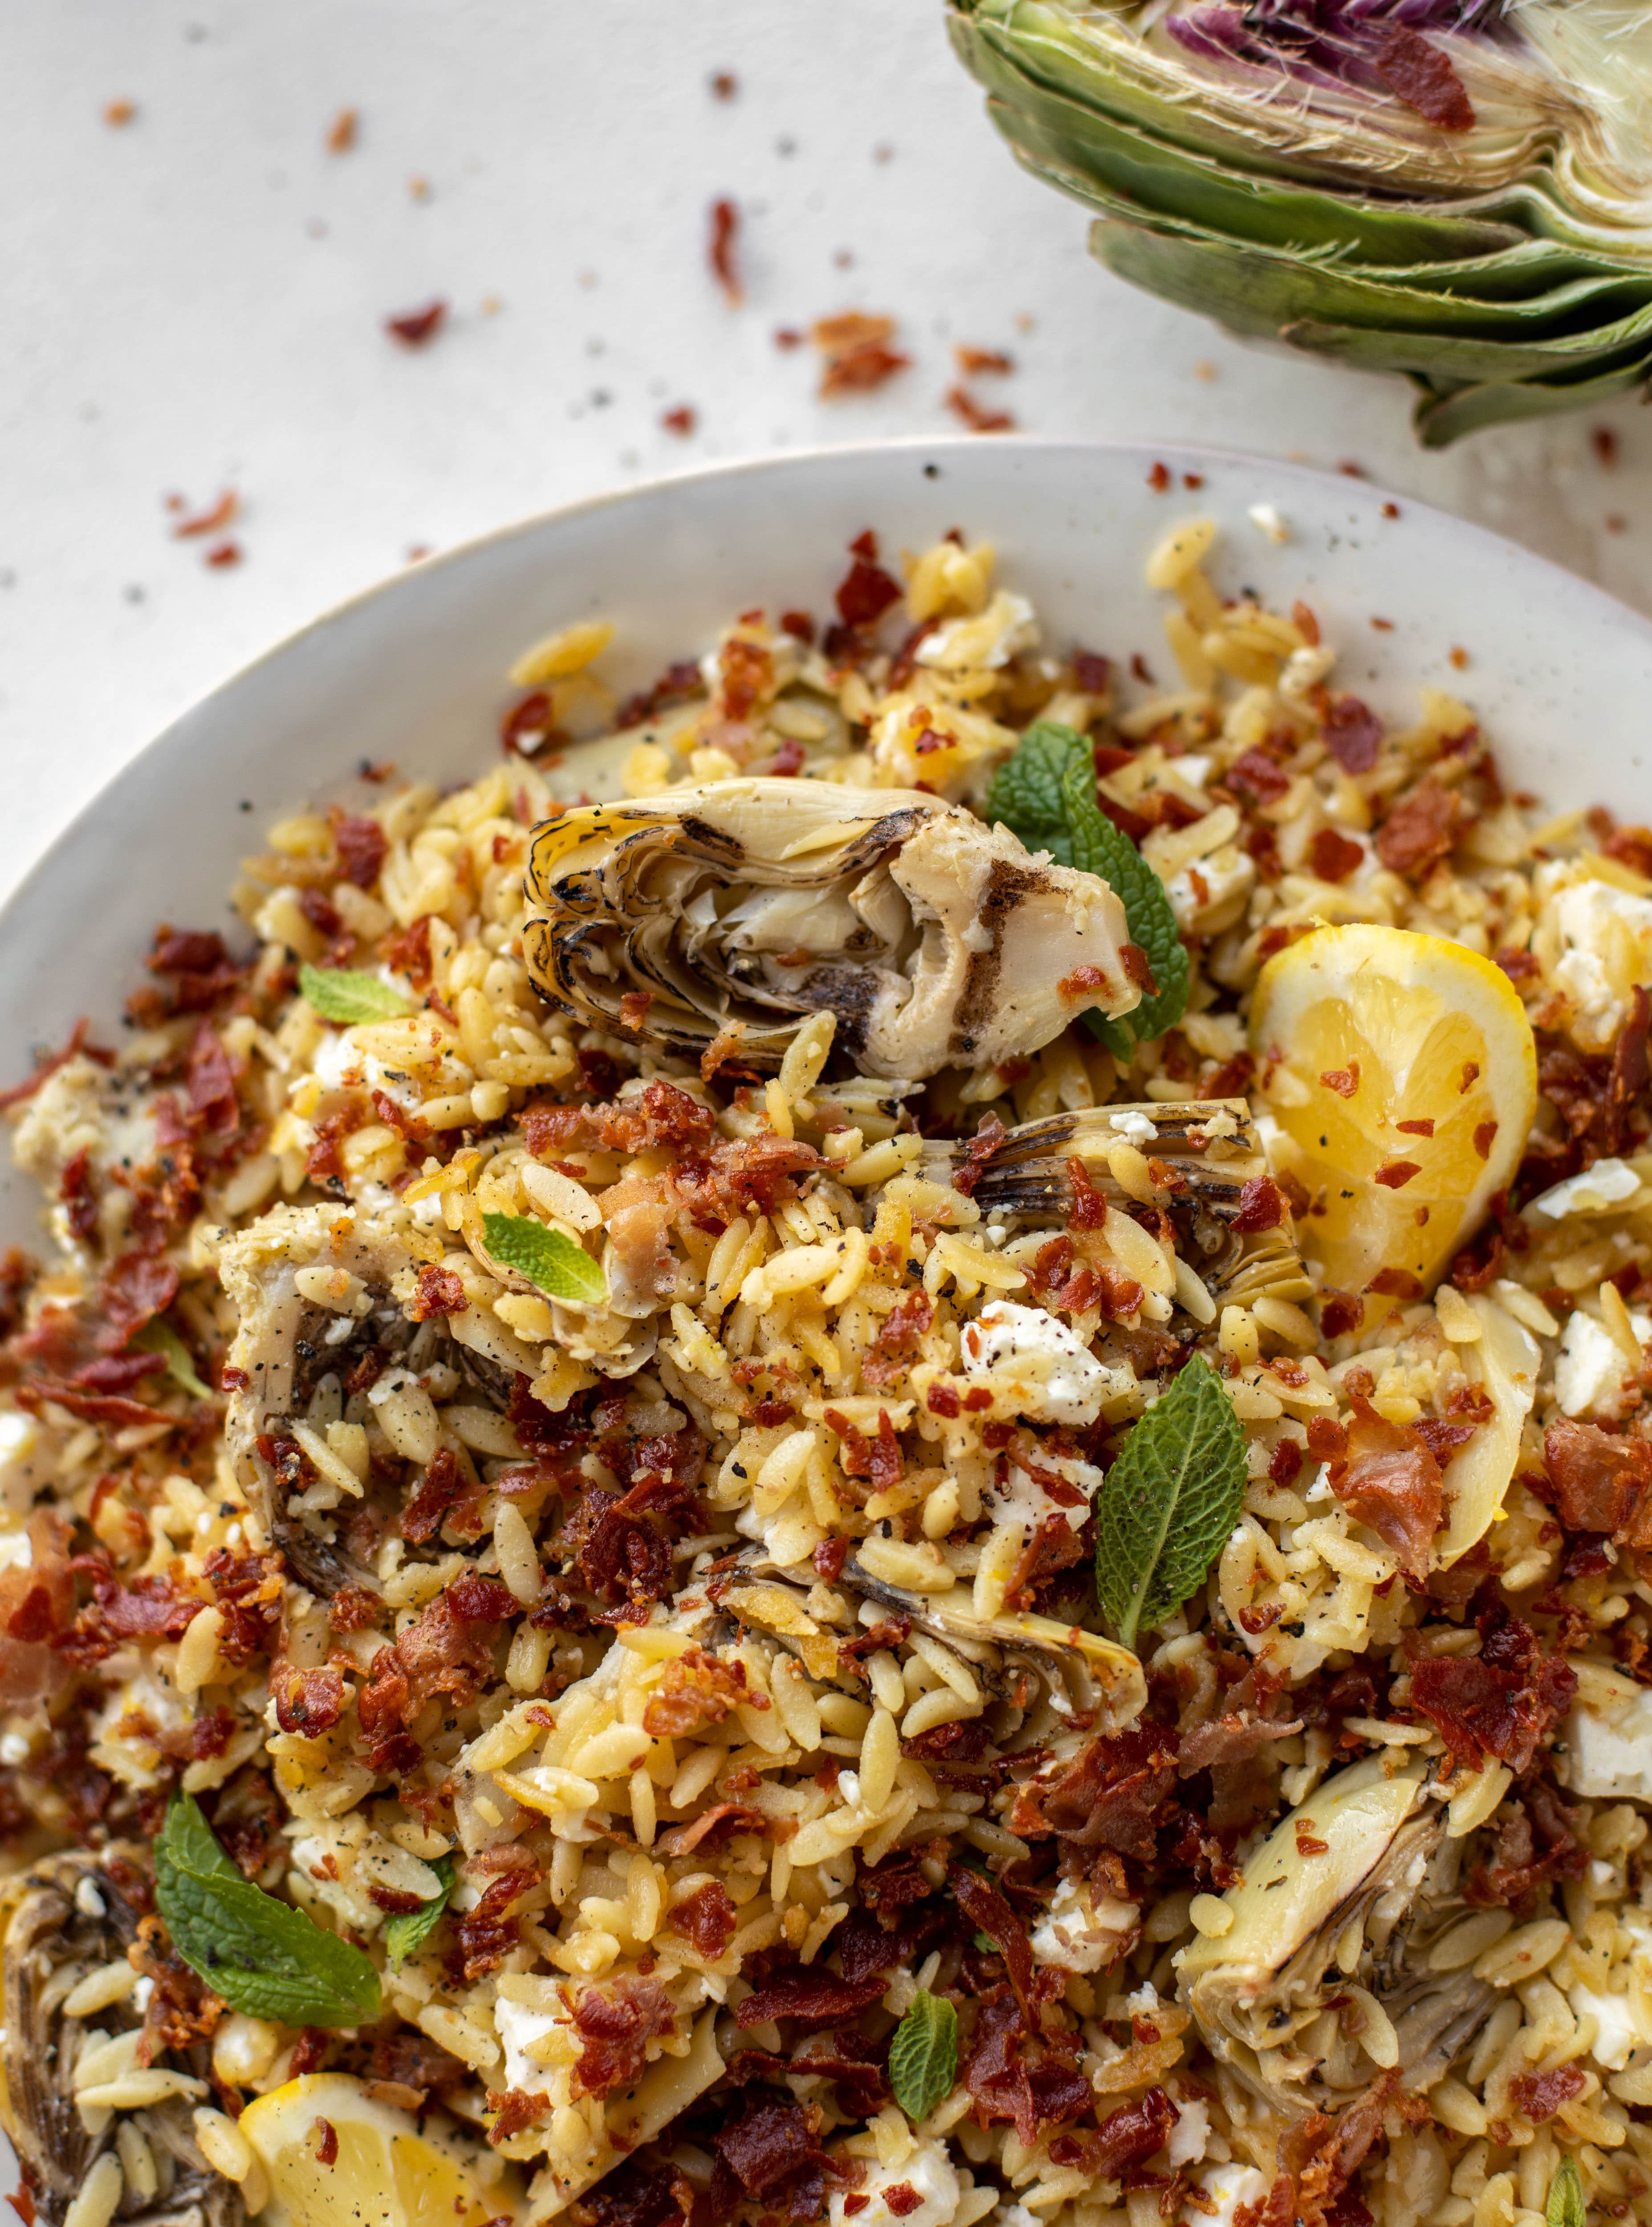 This crispy orzo is a wonderful spring dish. Artichoke hearts, lemon, goat cheese and herbs all topped with a sprinkling of crunchy prosciutto.